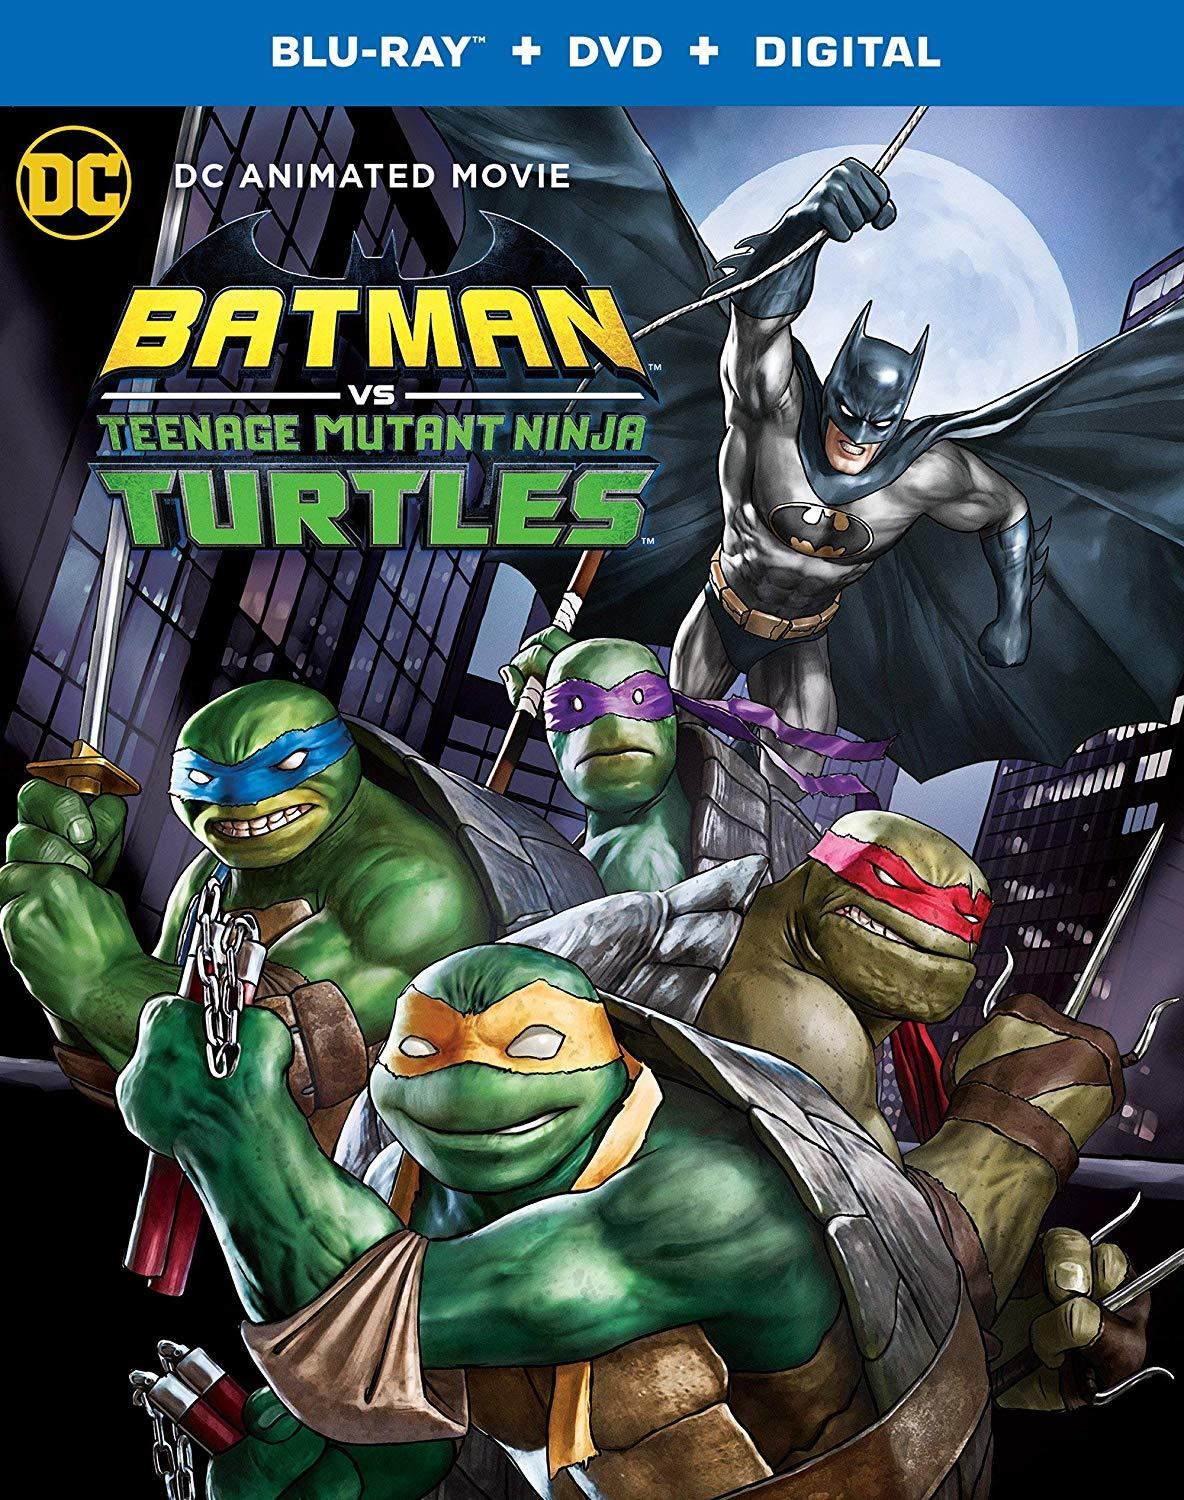 Batman vs. Teenage Mutant Ninja Turtles (Blu-ray)(Region Free)(Pre-order / Jun 4)